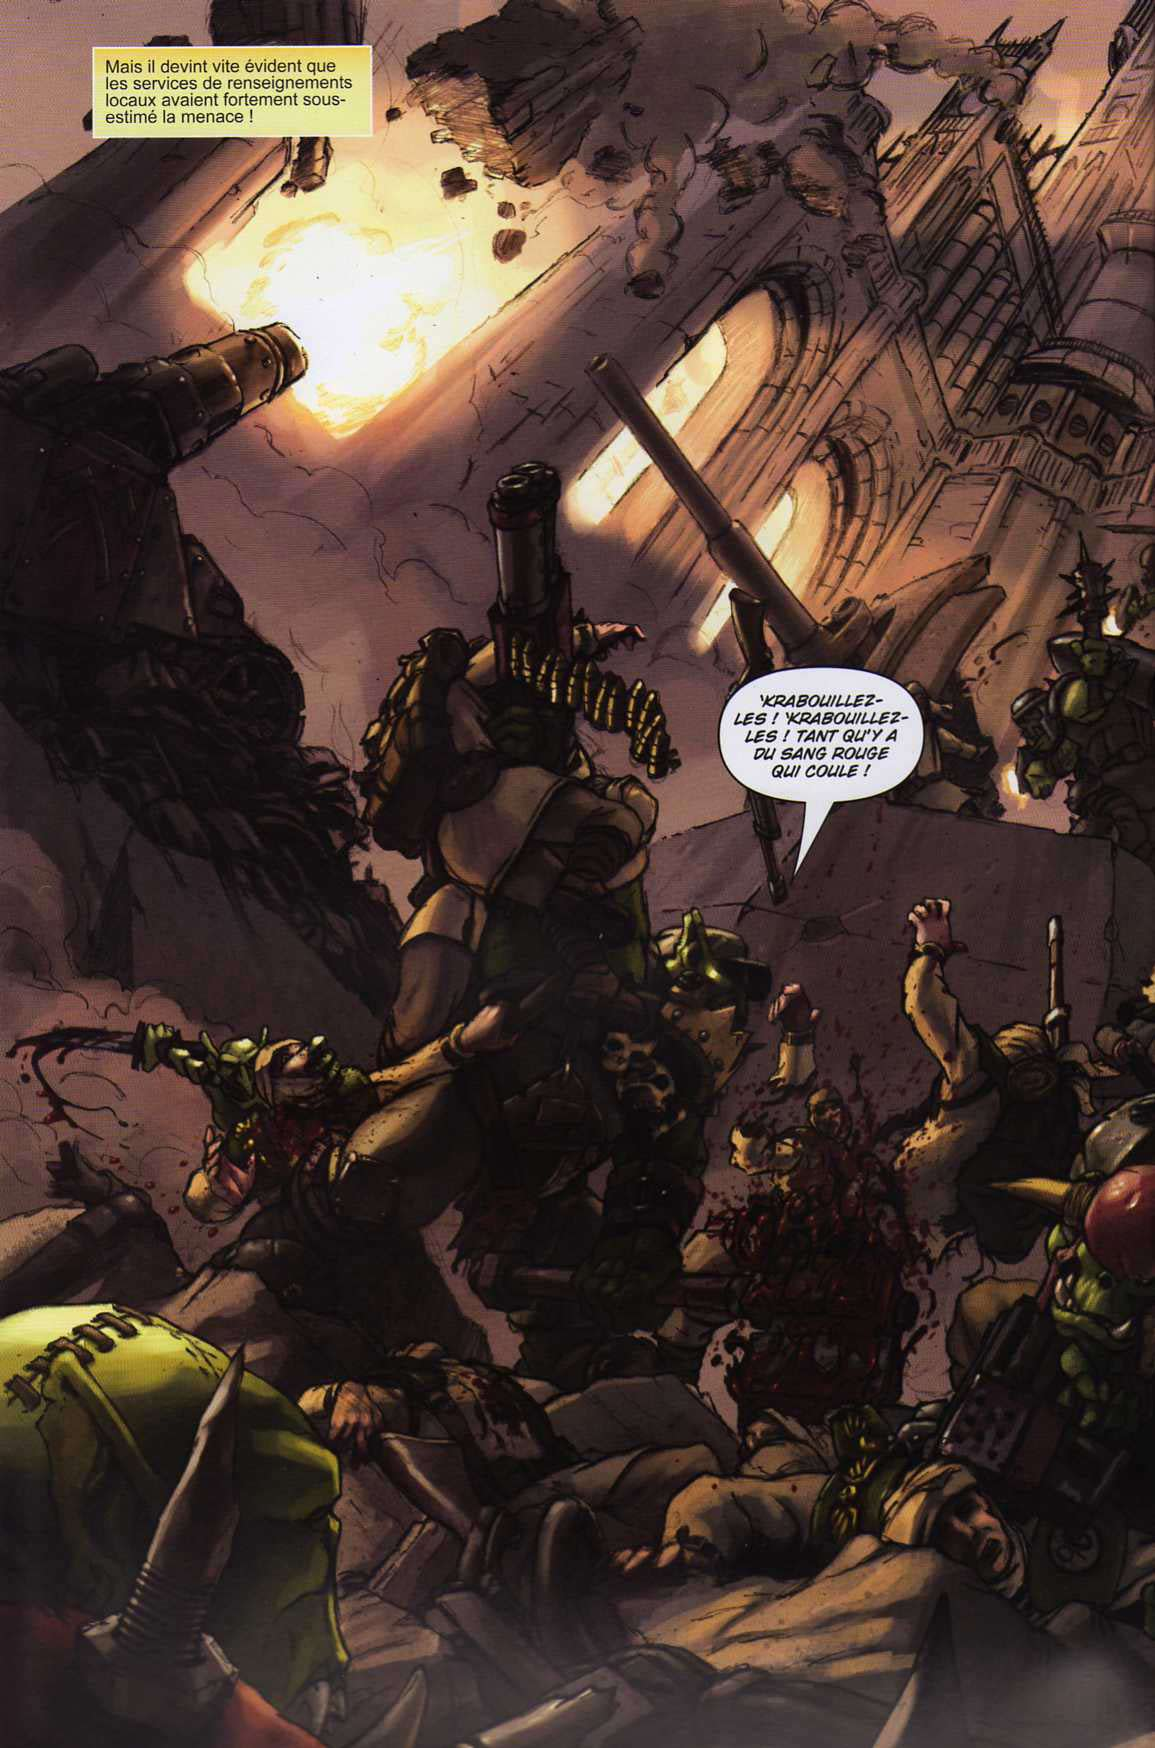 T3 : Tonnerre de sang - Warhammer 40.000 (page 2)